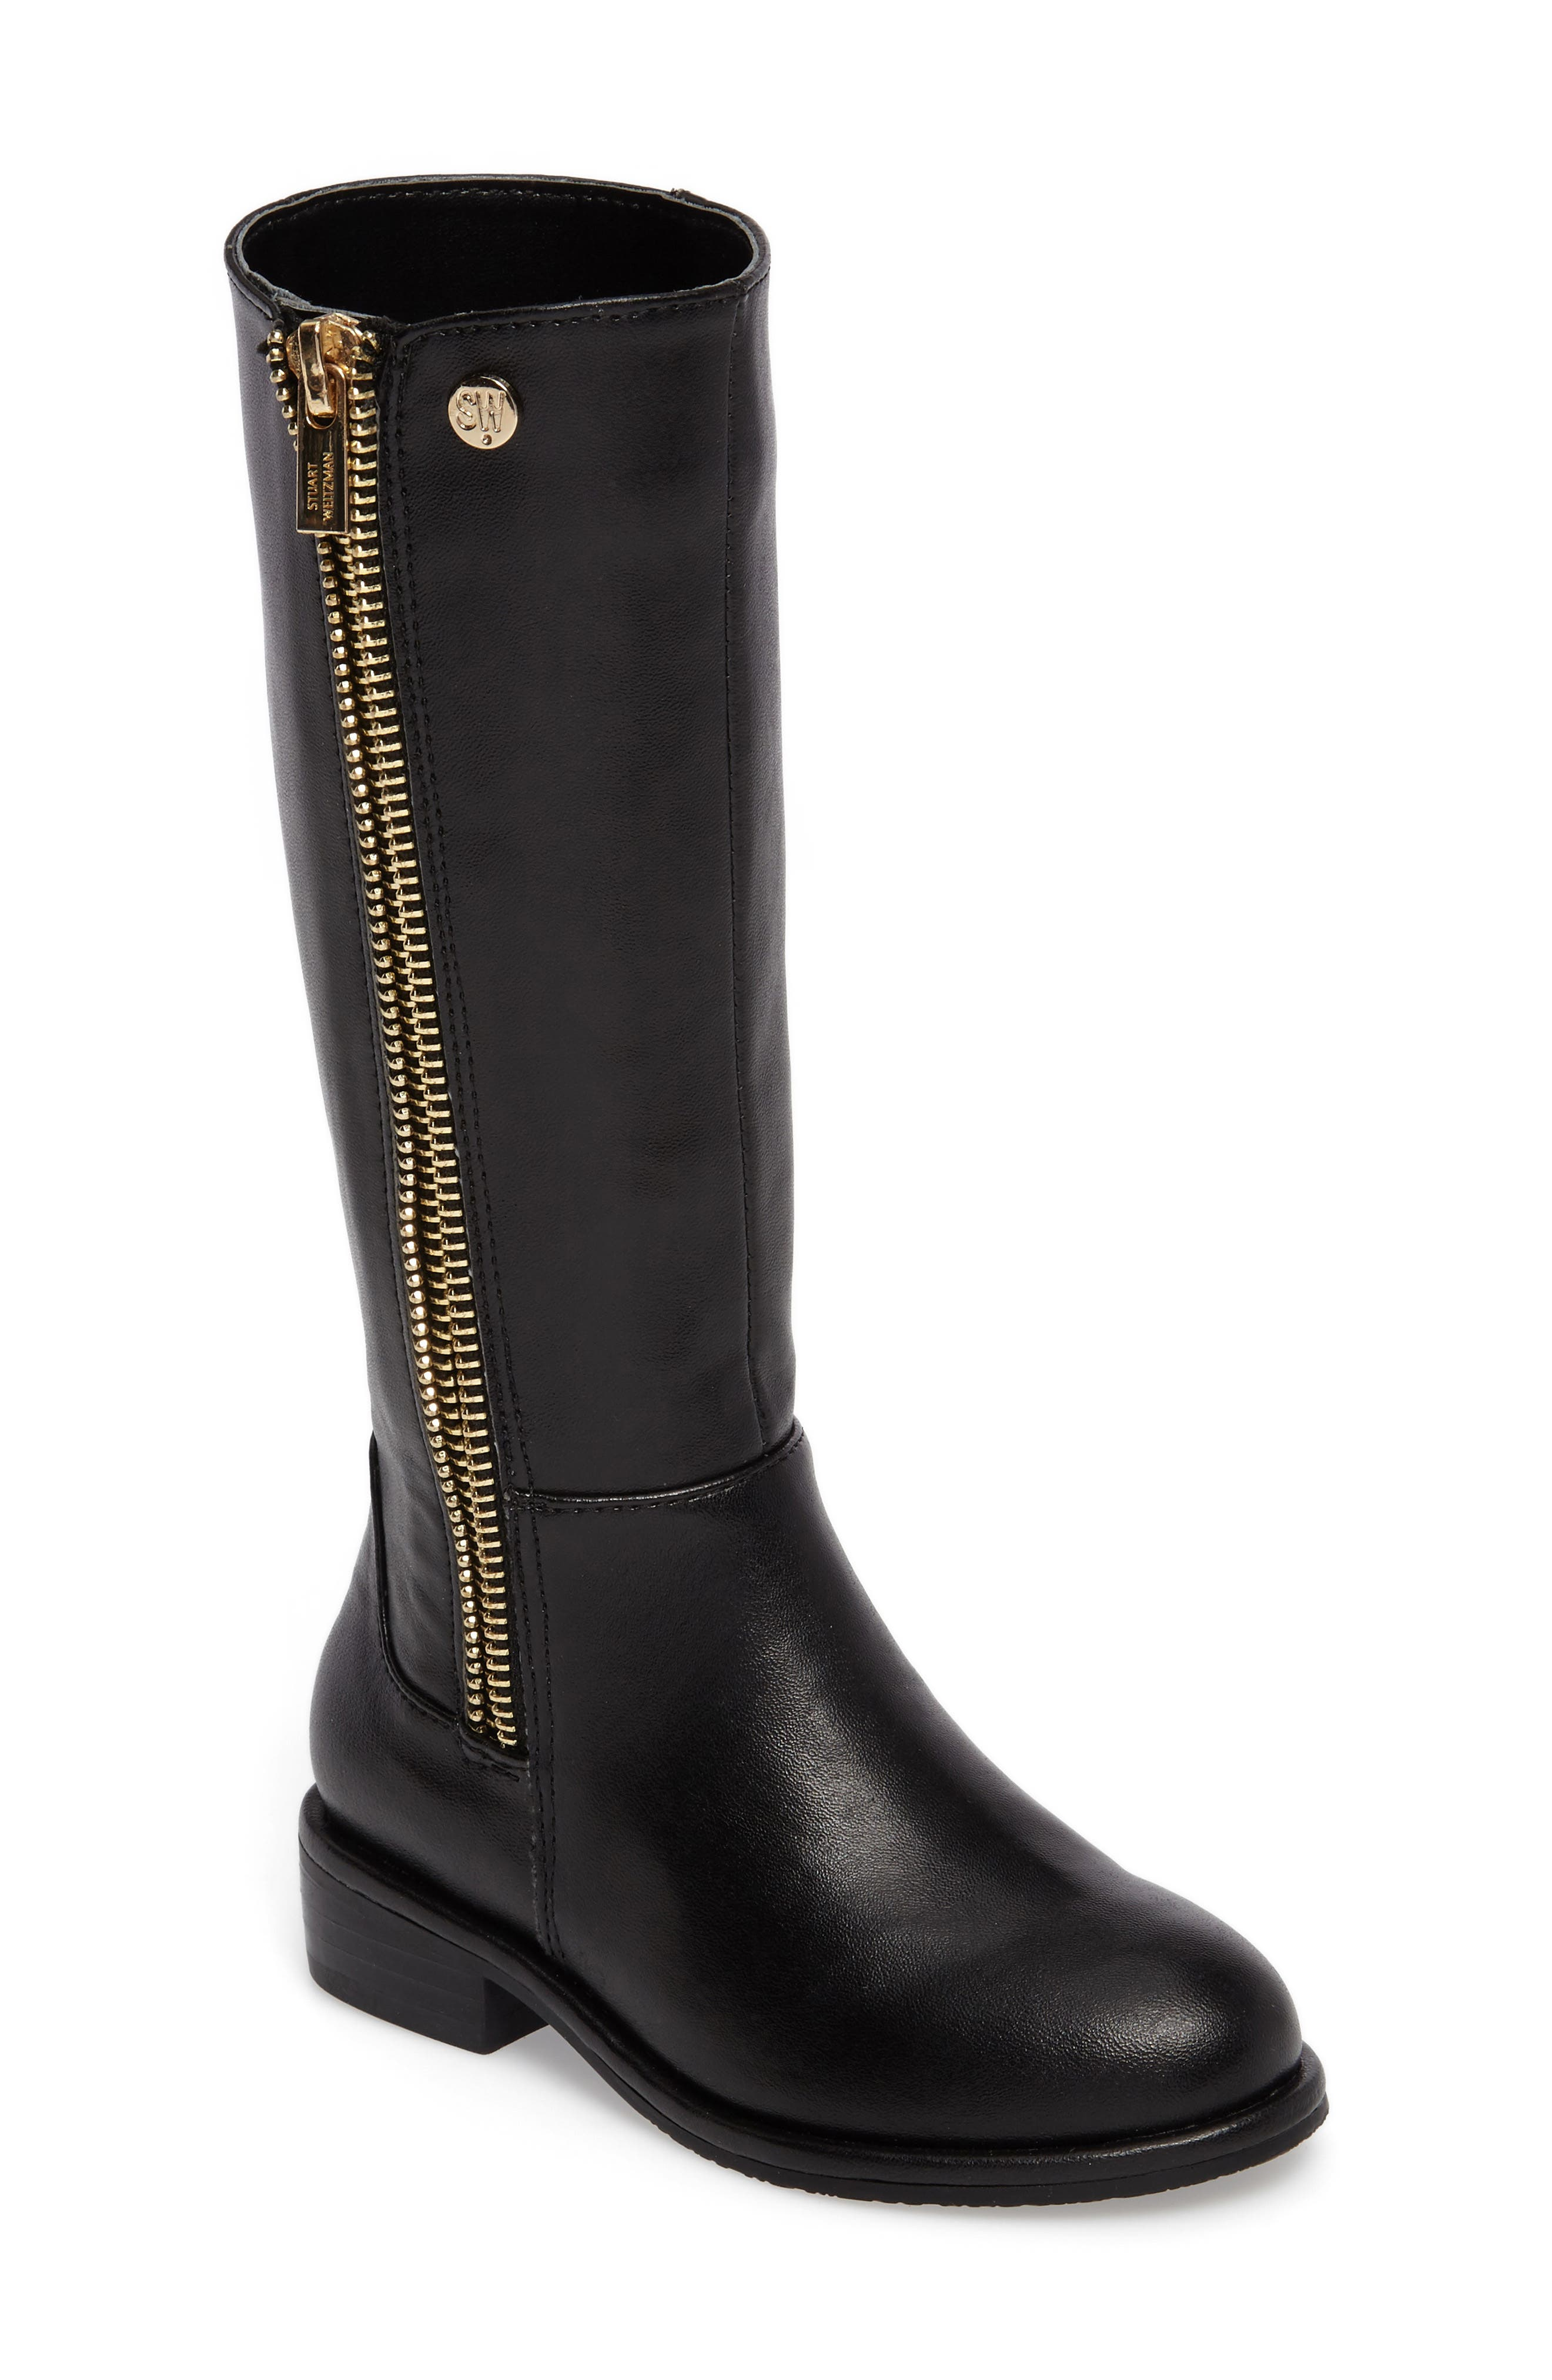 Lowland Riding Boot,                             Main thumbnail 1, color,                             Black Faux Leather